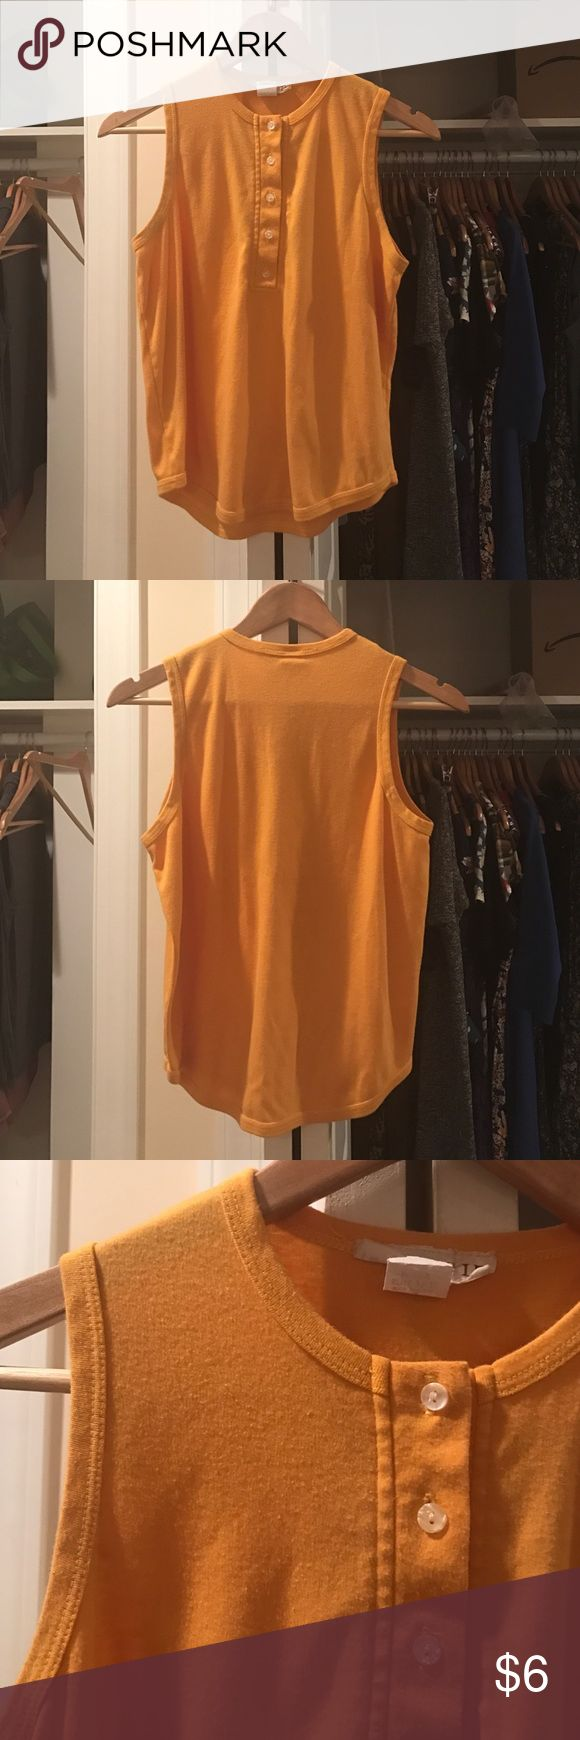 Vintage marigold yellow tank Super cute marigold yellow tank top with buttons halfway down the front. Great color with normal wear for its age, awesome with a high wasted skirt to look like a lil ray of sunshine Tops Tank Tops